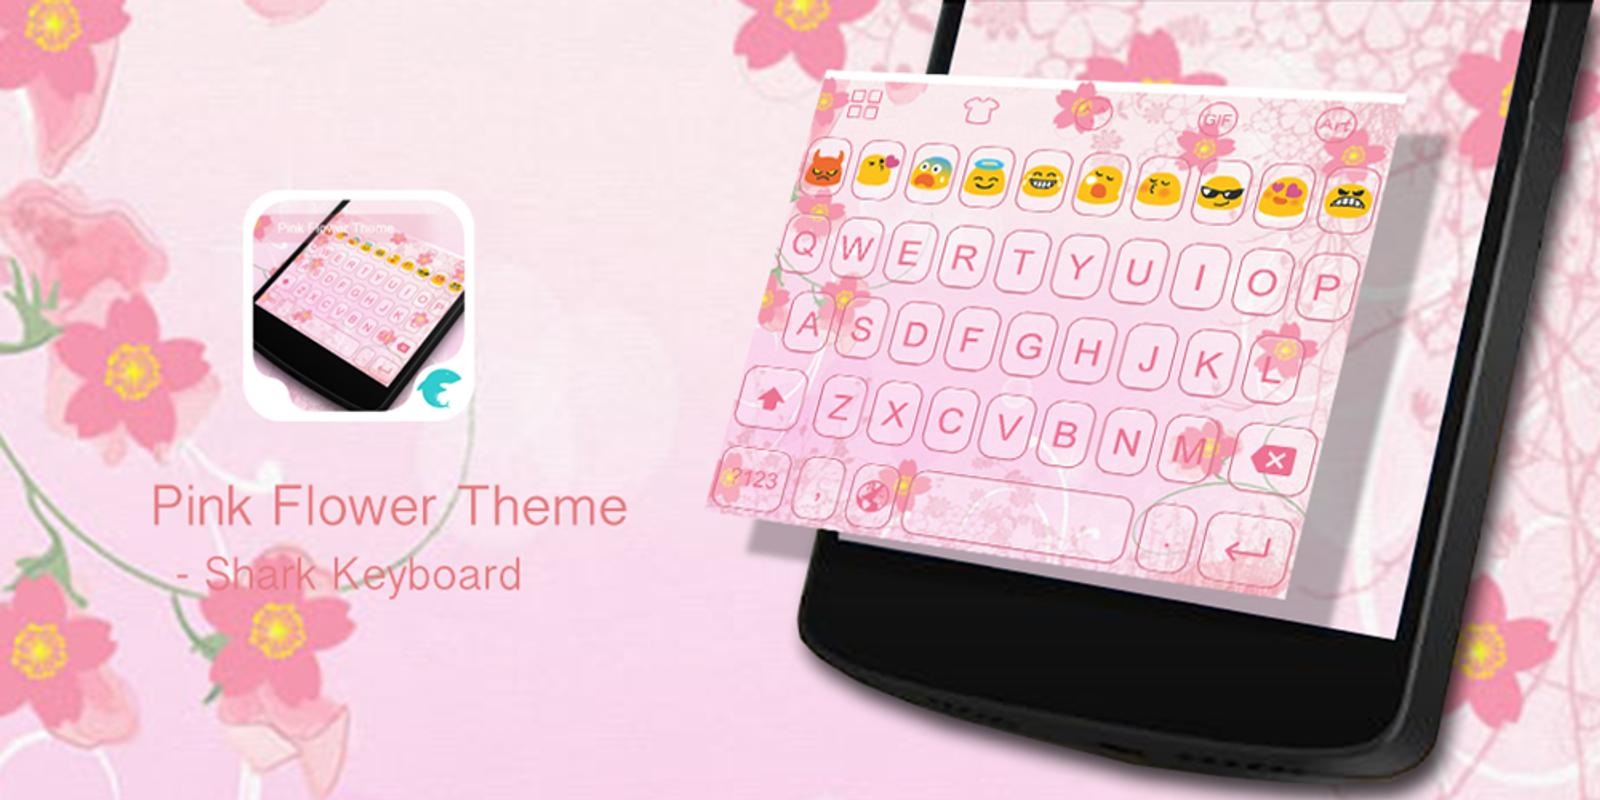 Emoji keyboard pink flower apk emoji keyboard pink flower apk mightylinksfo